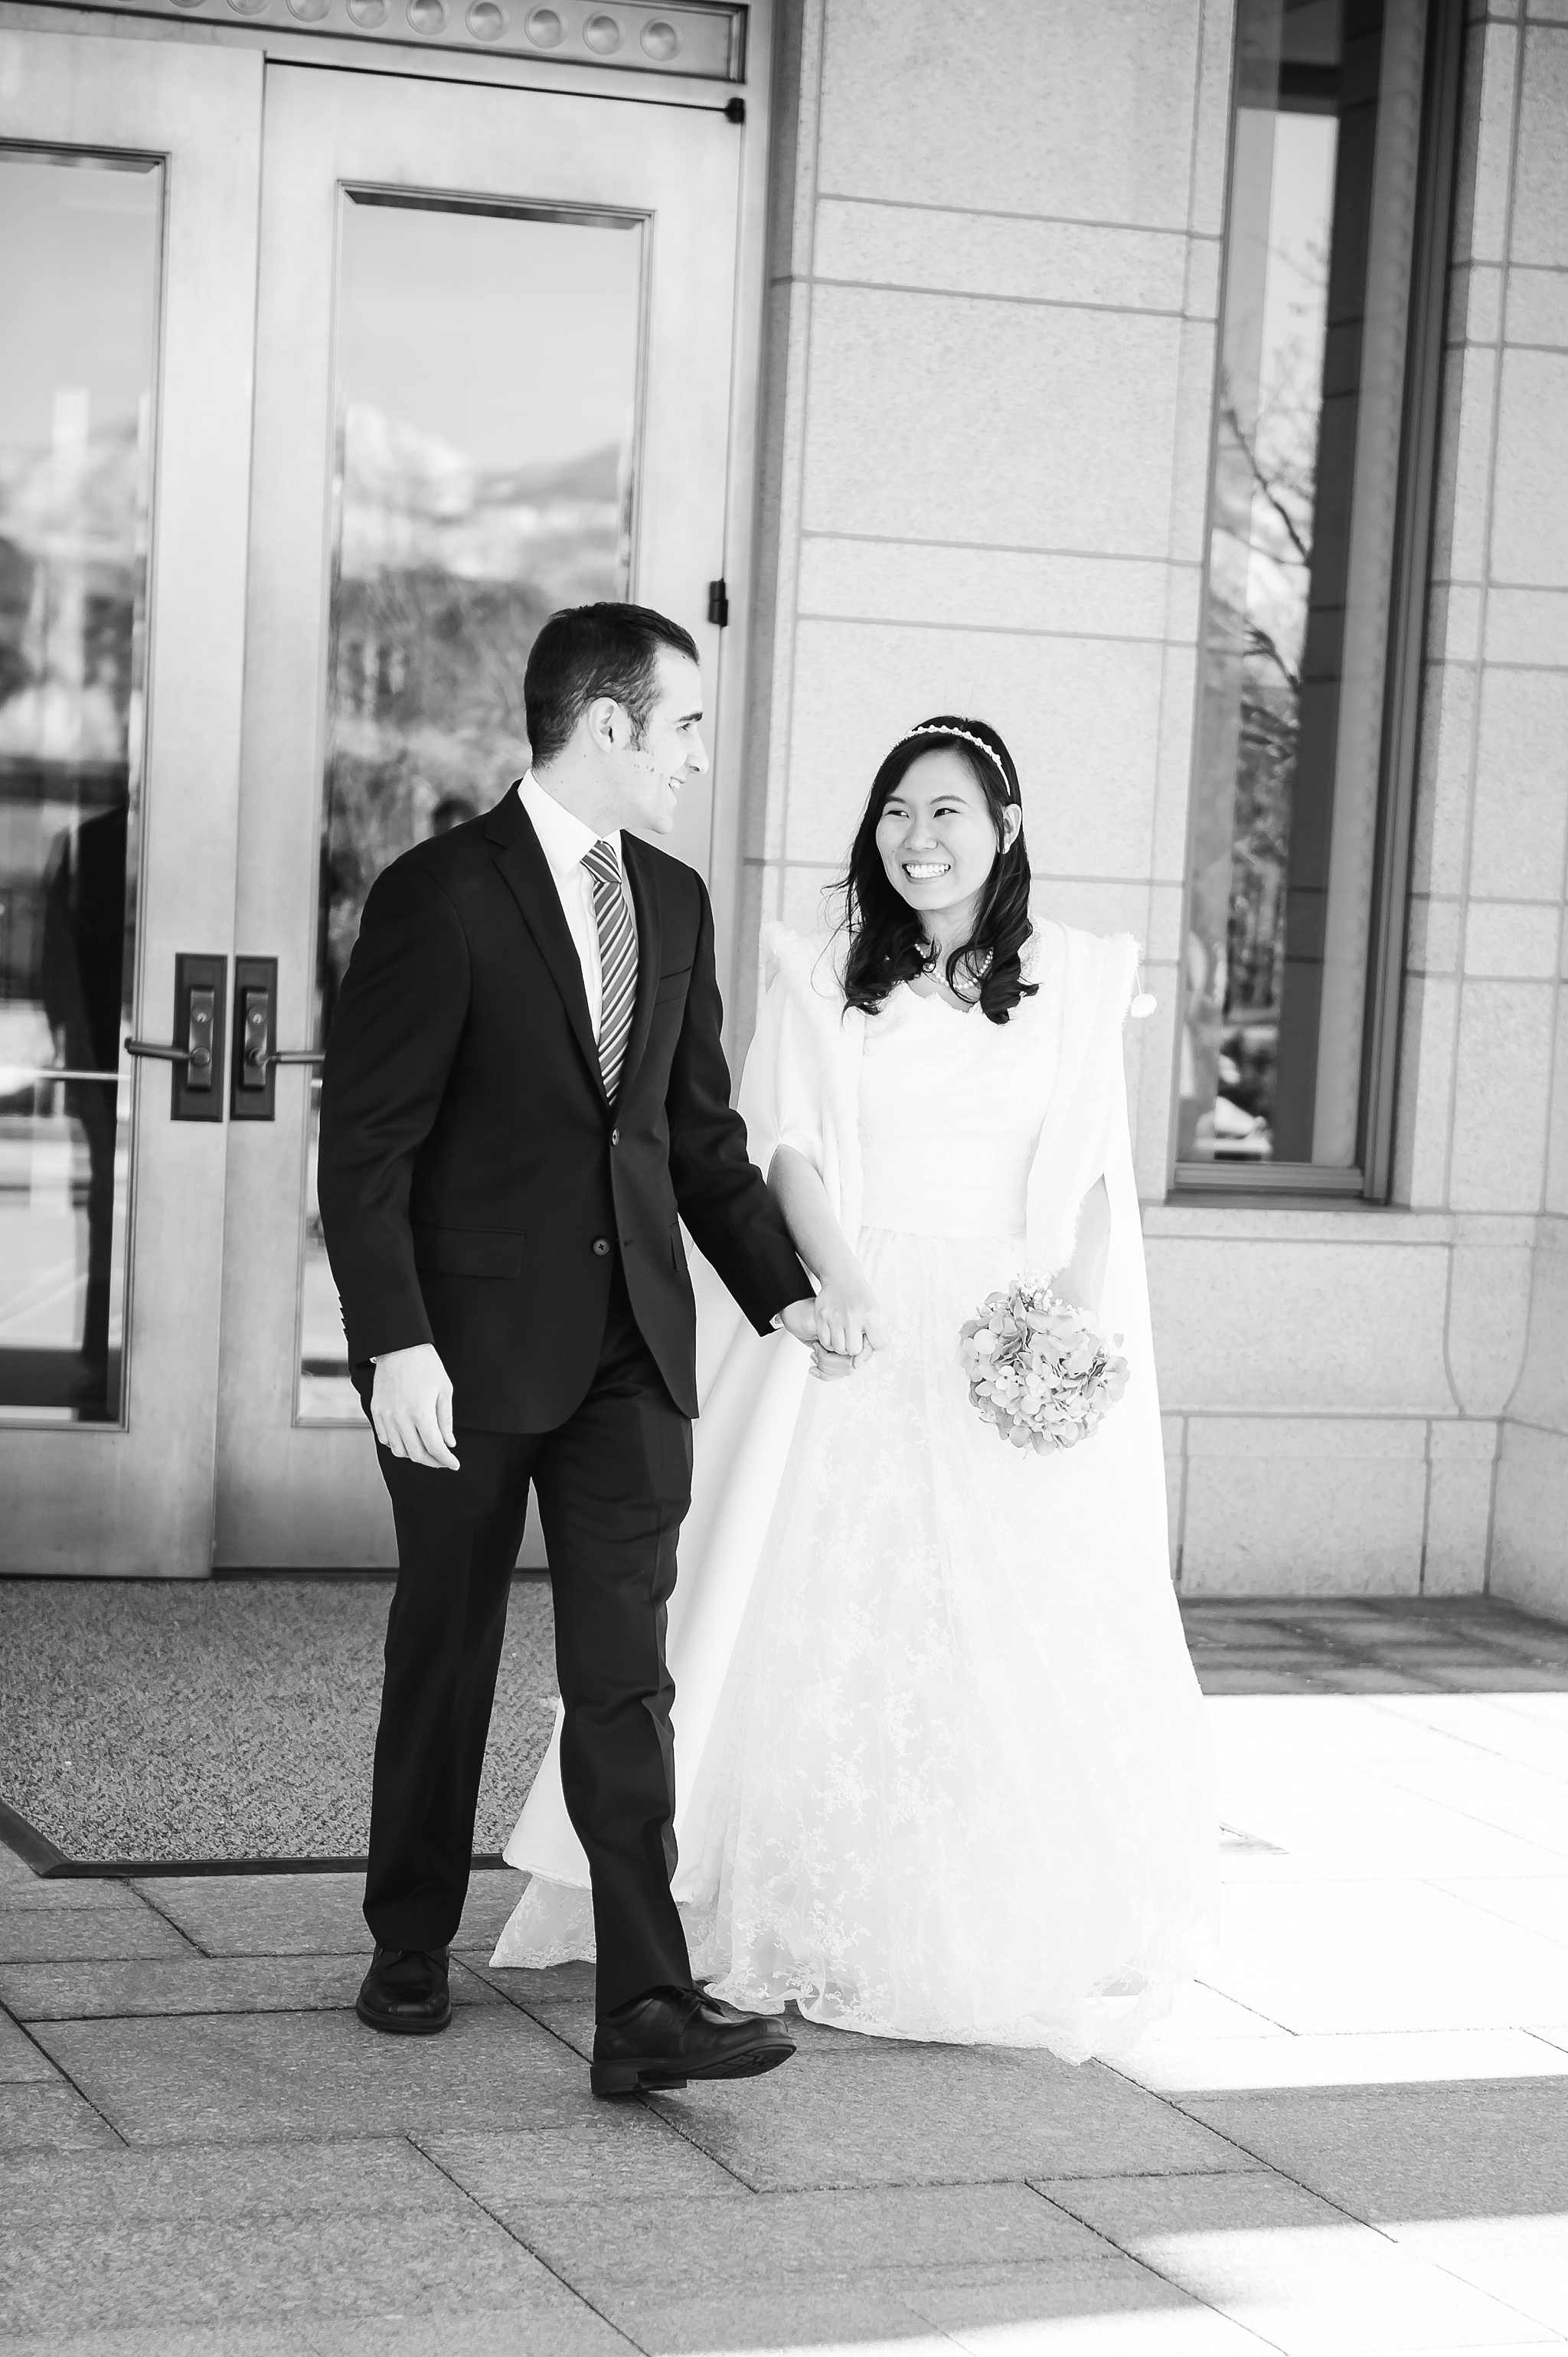 Salt Lake City Wedding Photographer Ali Sumsion 001